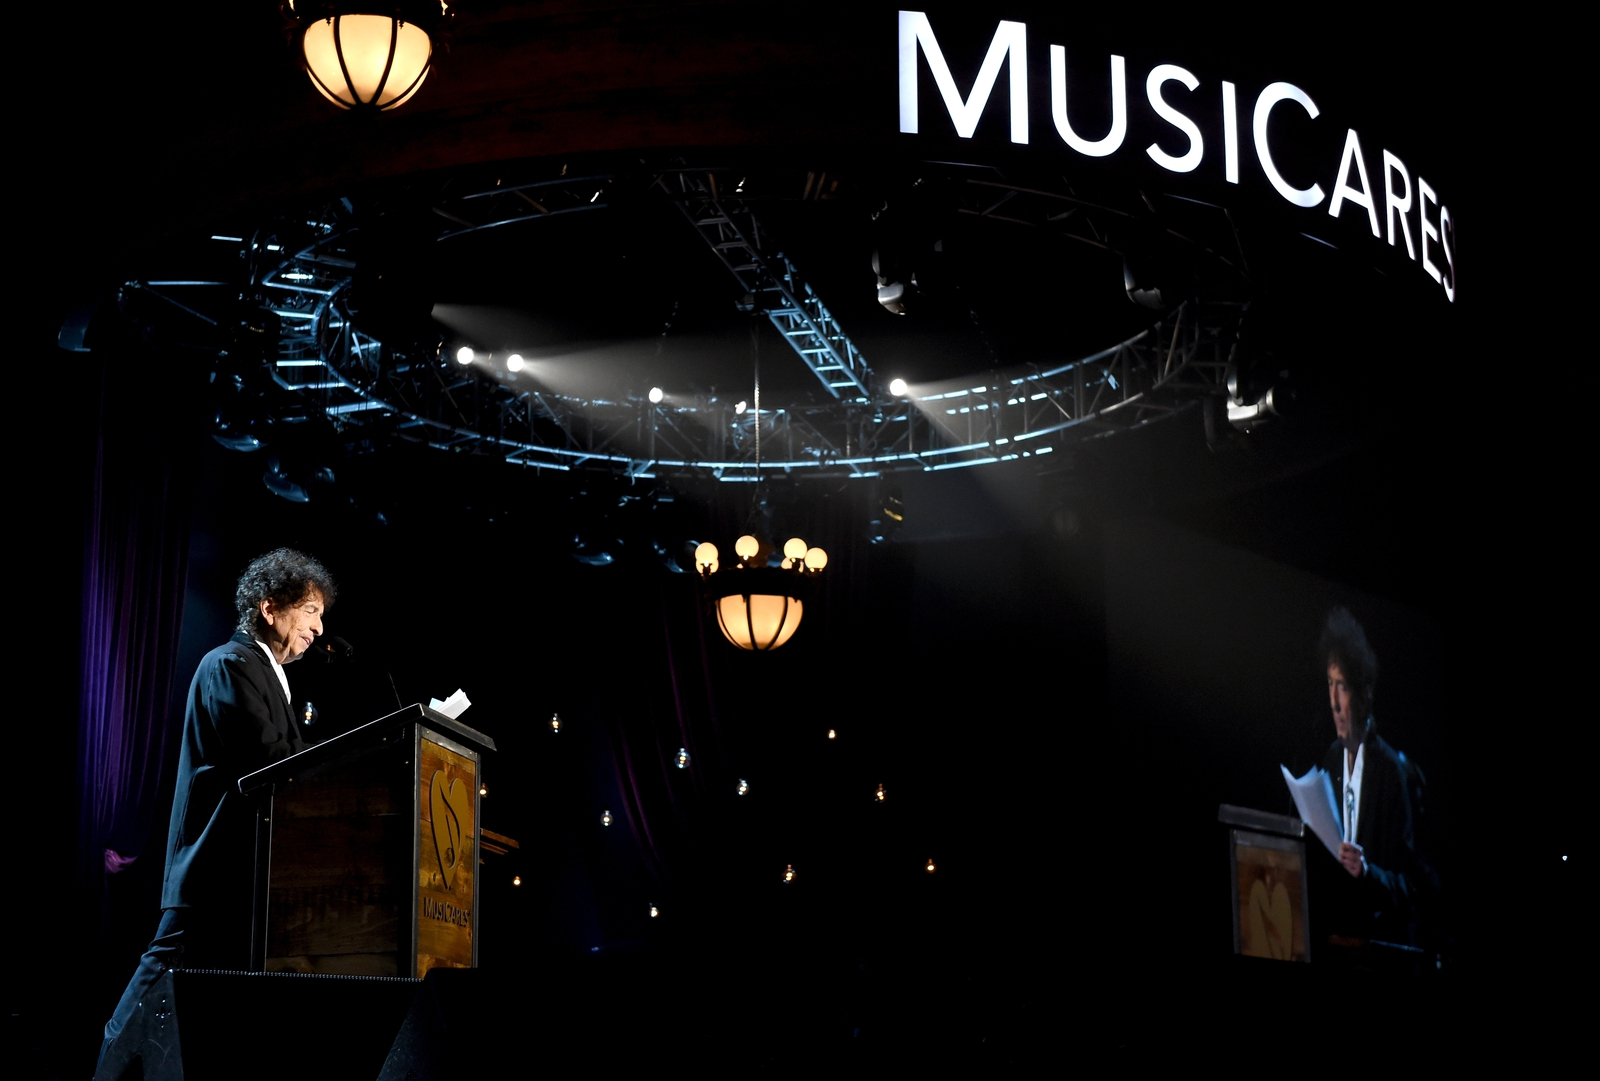 Image - Bob Dylan speaks onstage at the MusiCares 2015 Person Of The Year Gala.